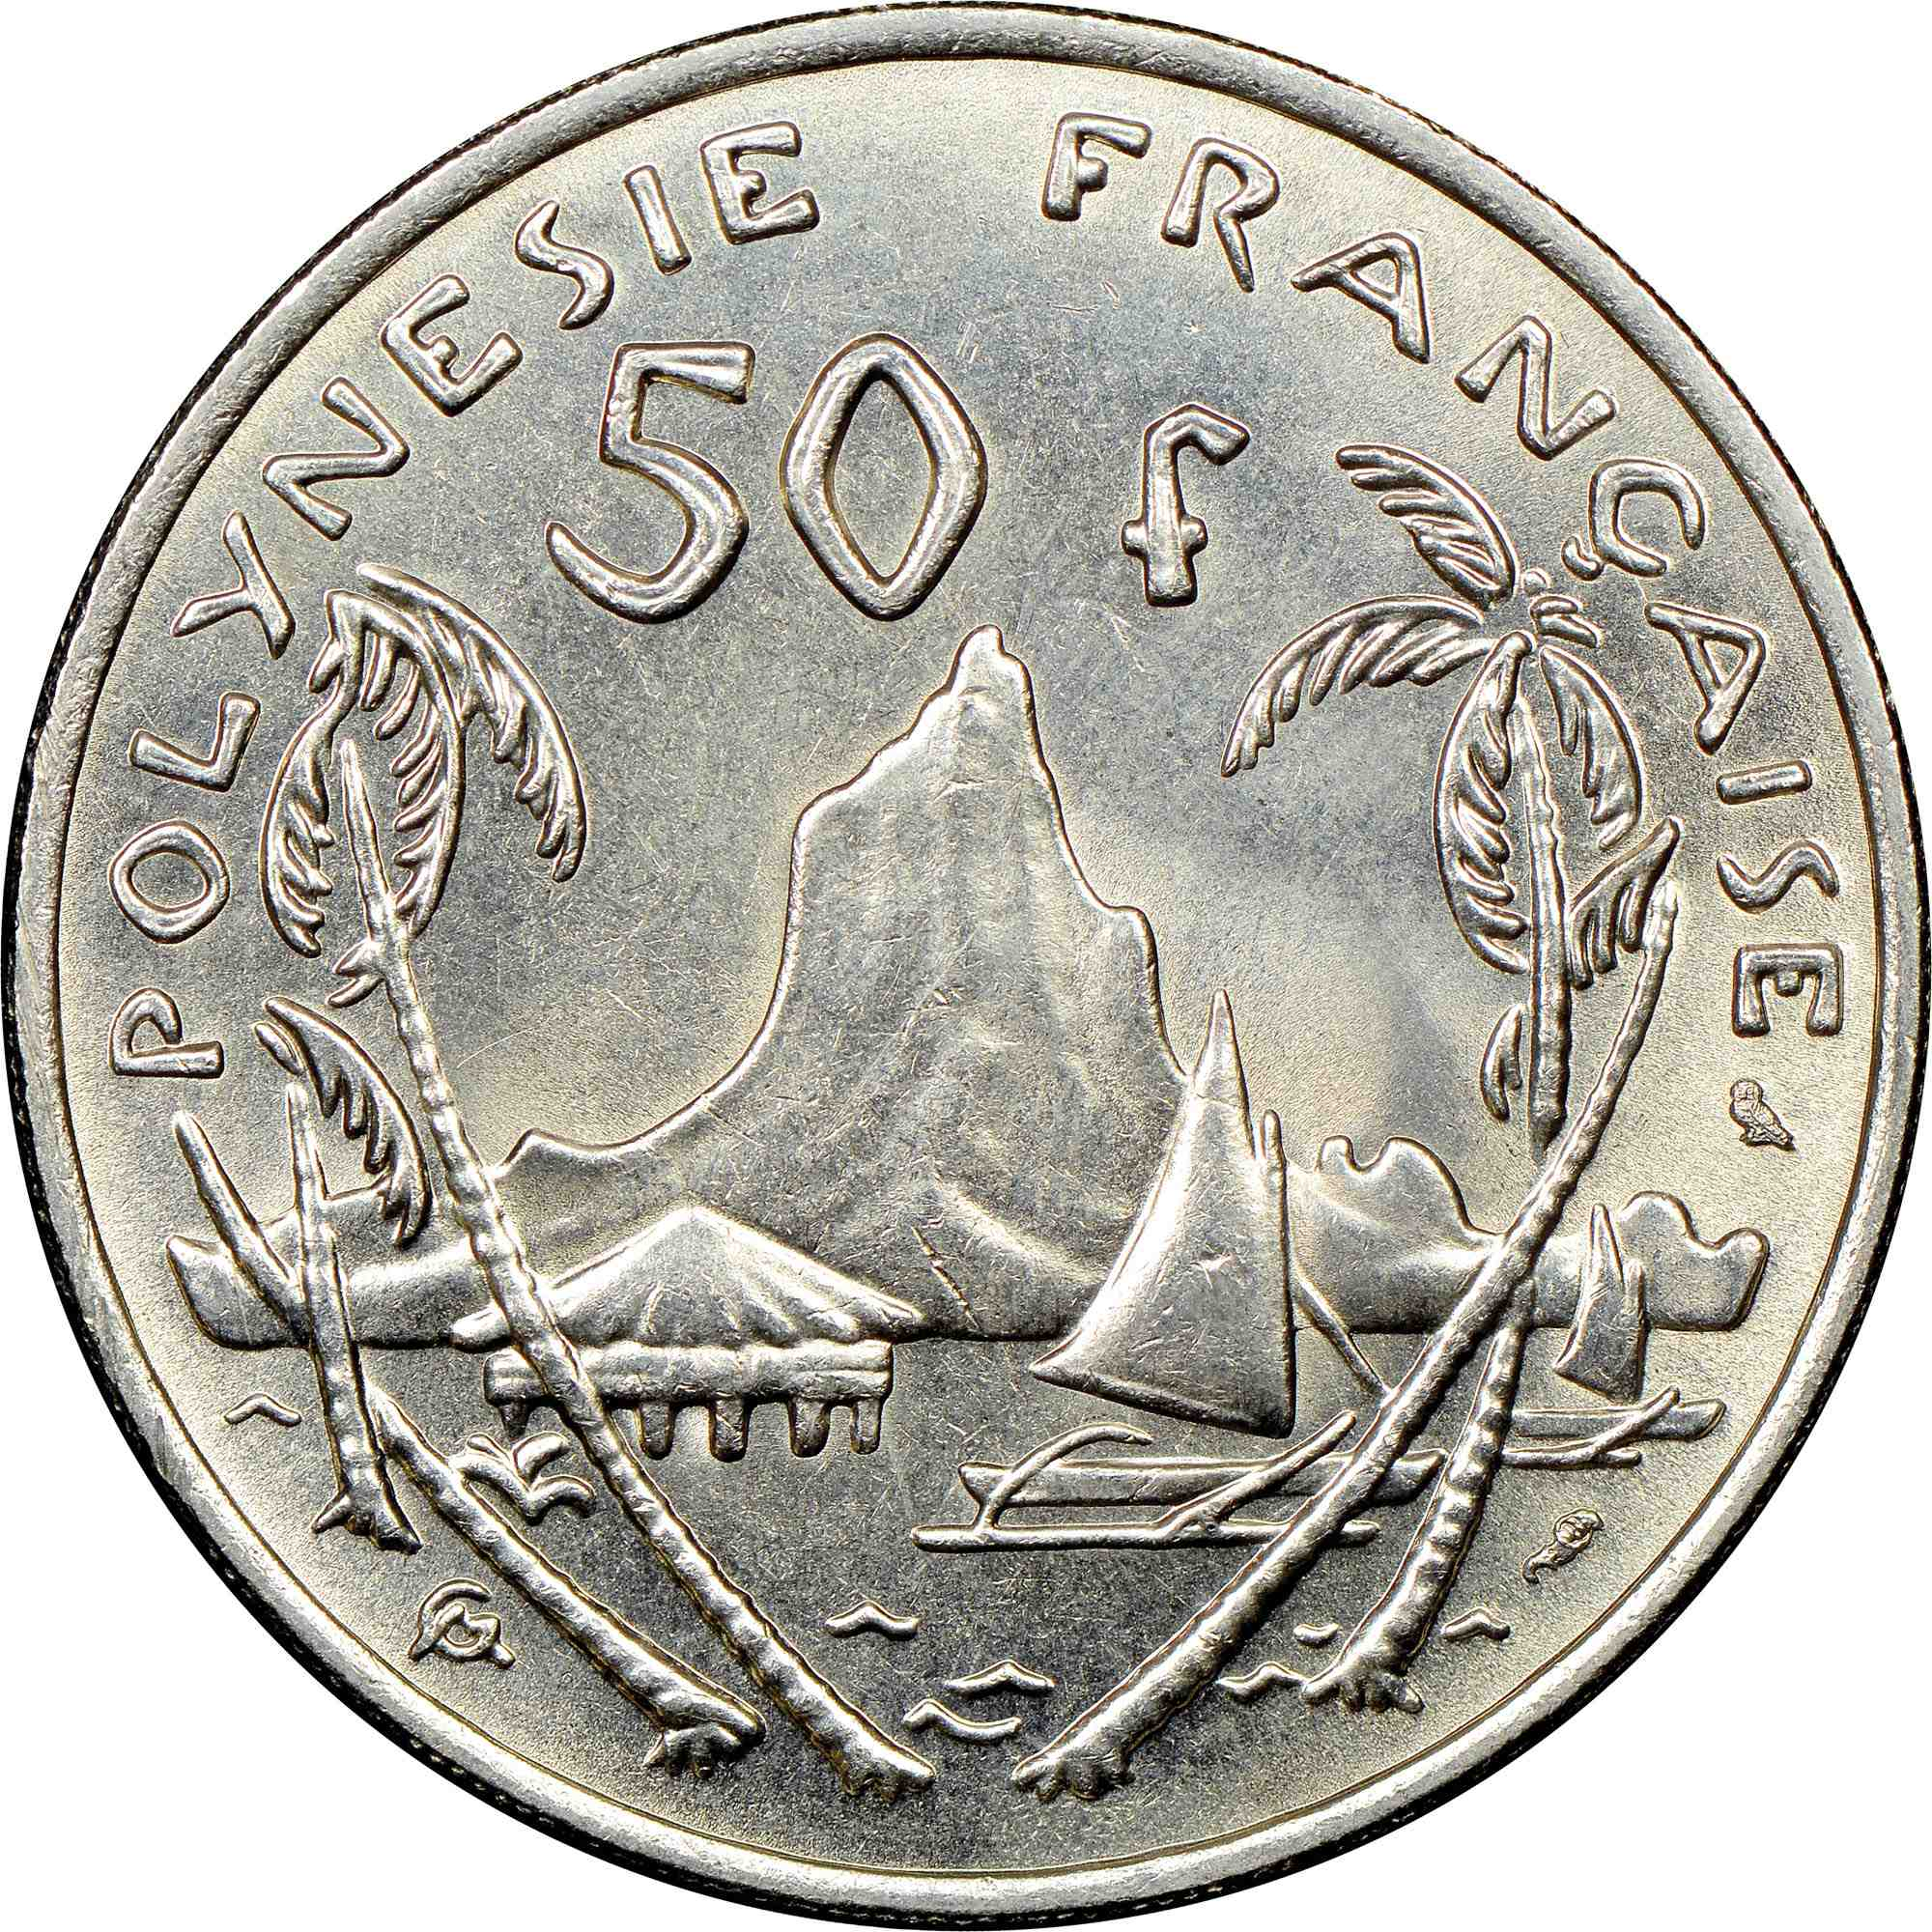 What is the Tahitian currency?